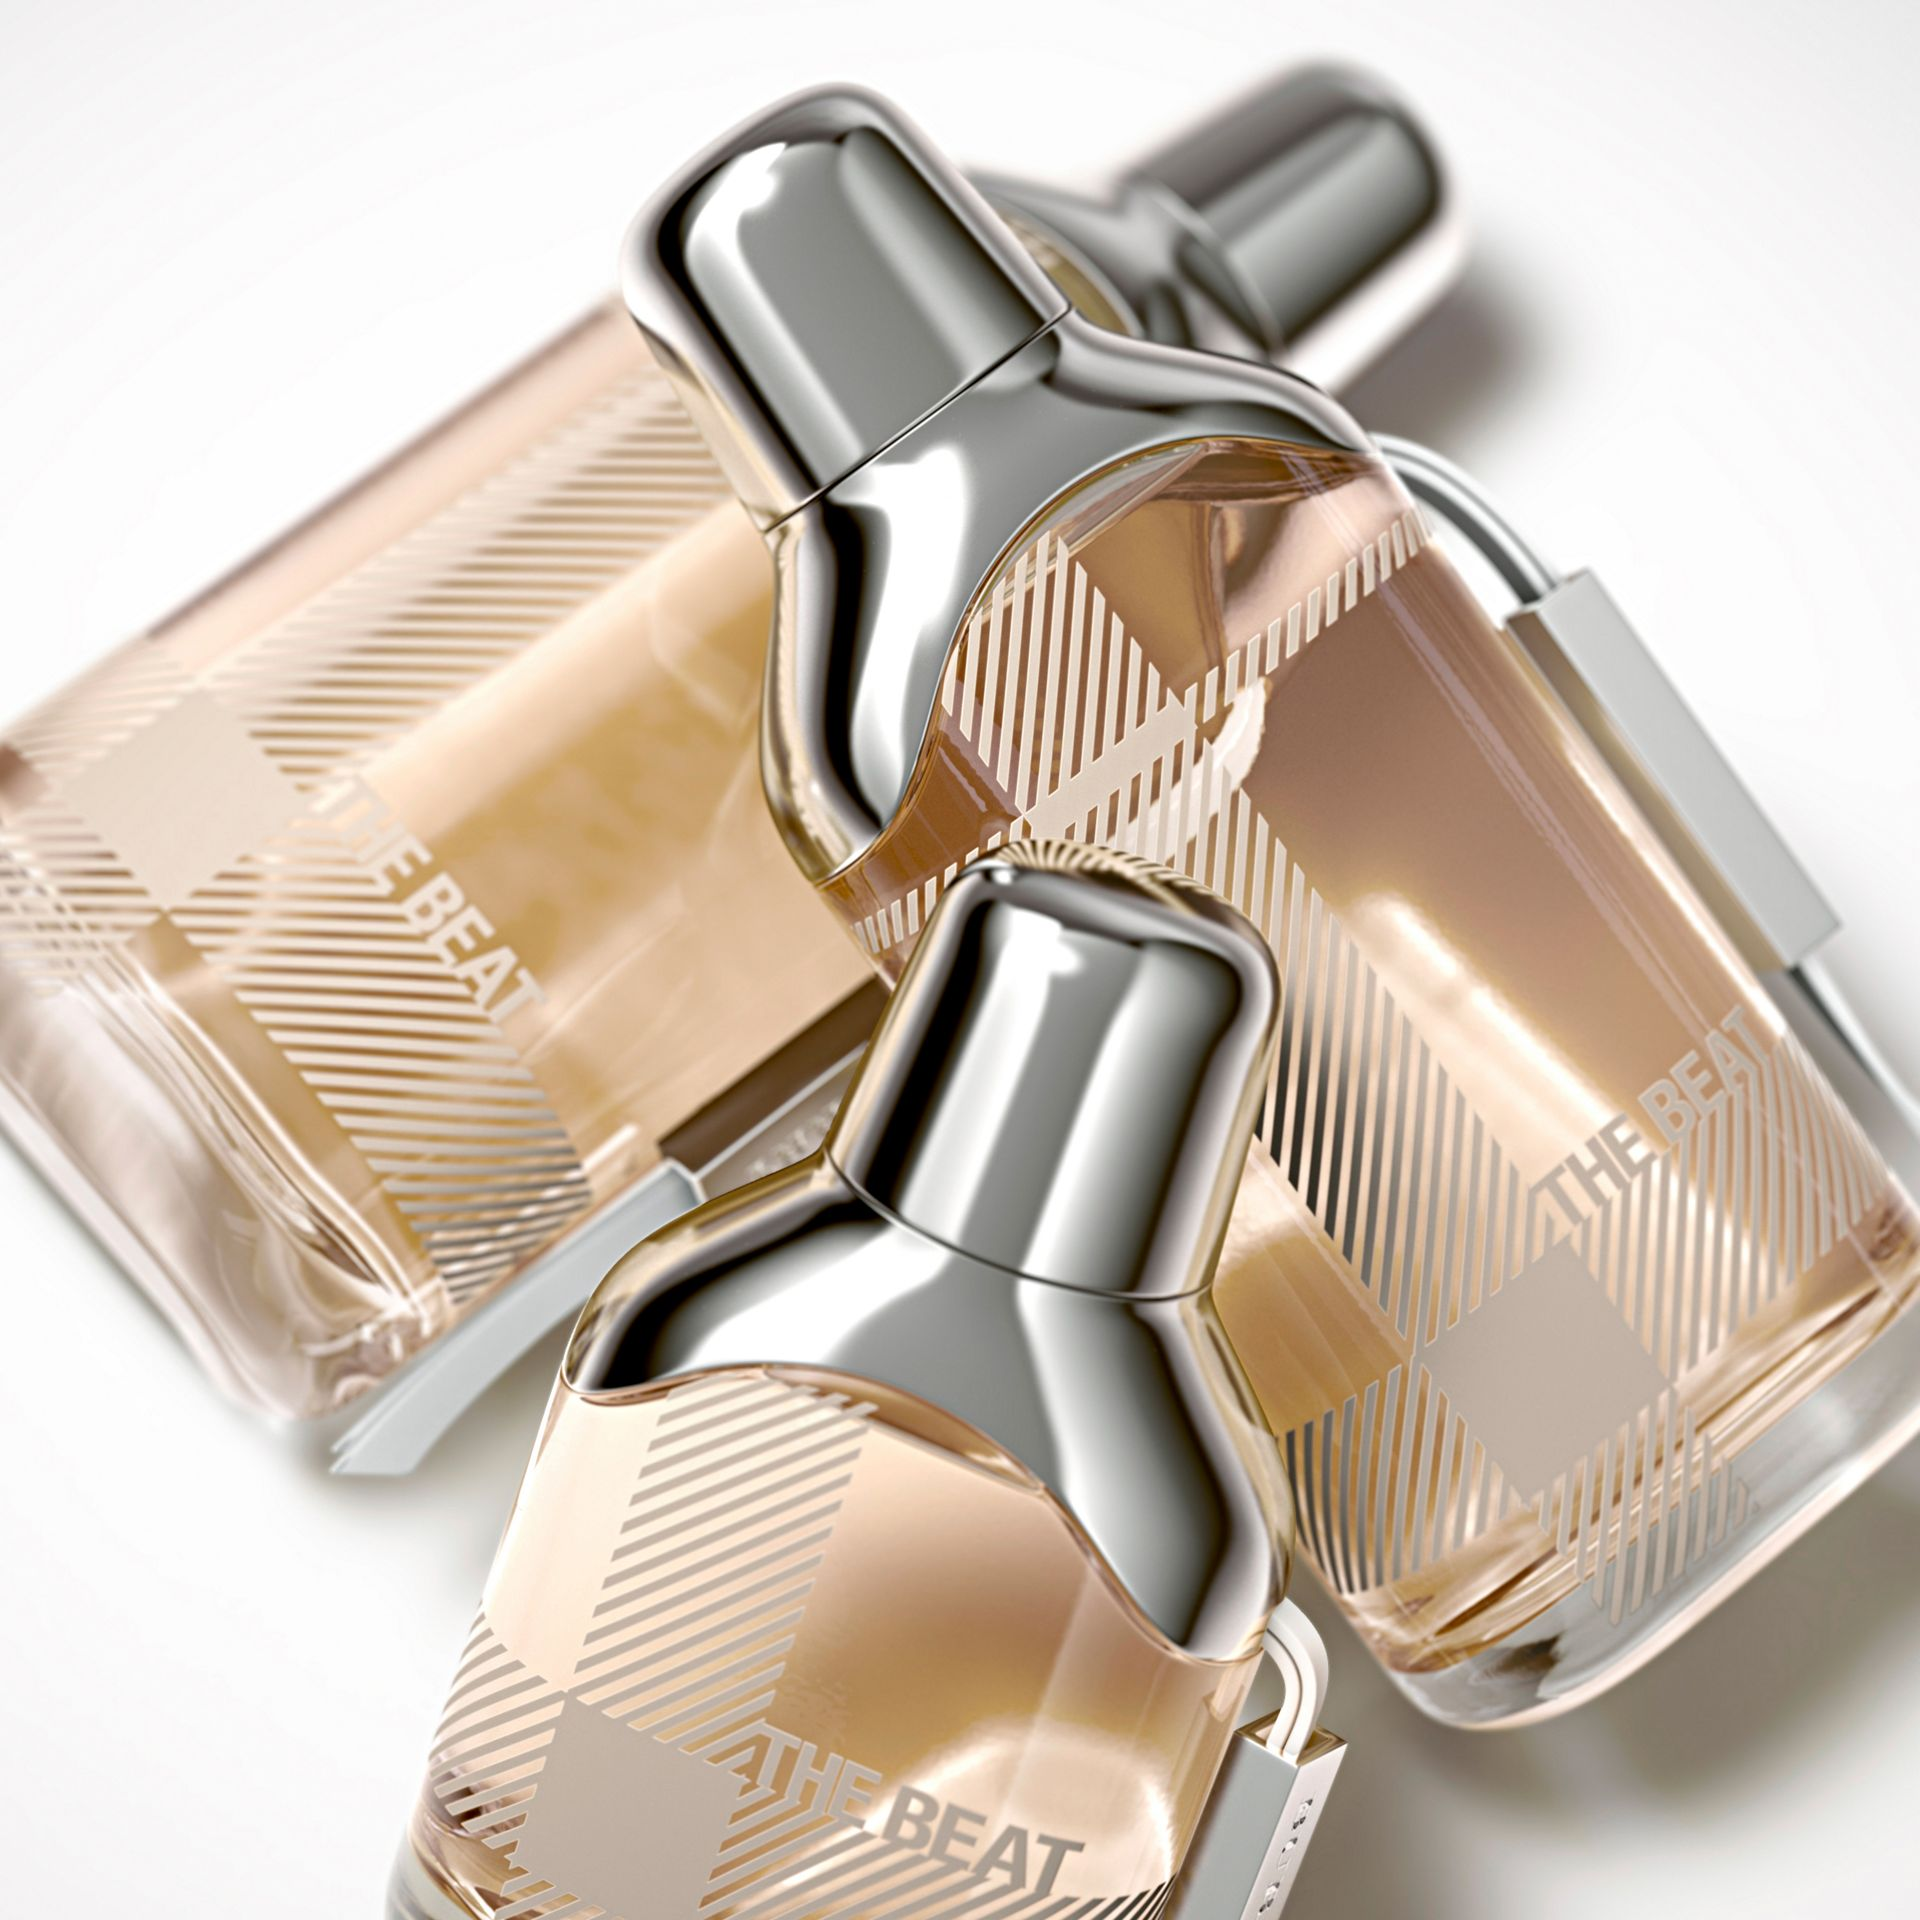 Burberry The Beat Eau de Parfum 75ml - Women | Burberry Hong Kong - gallery image 2